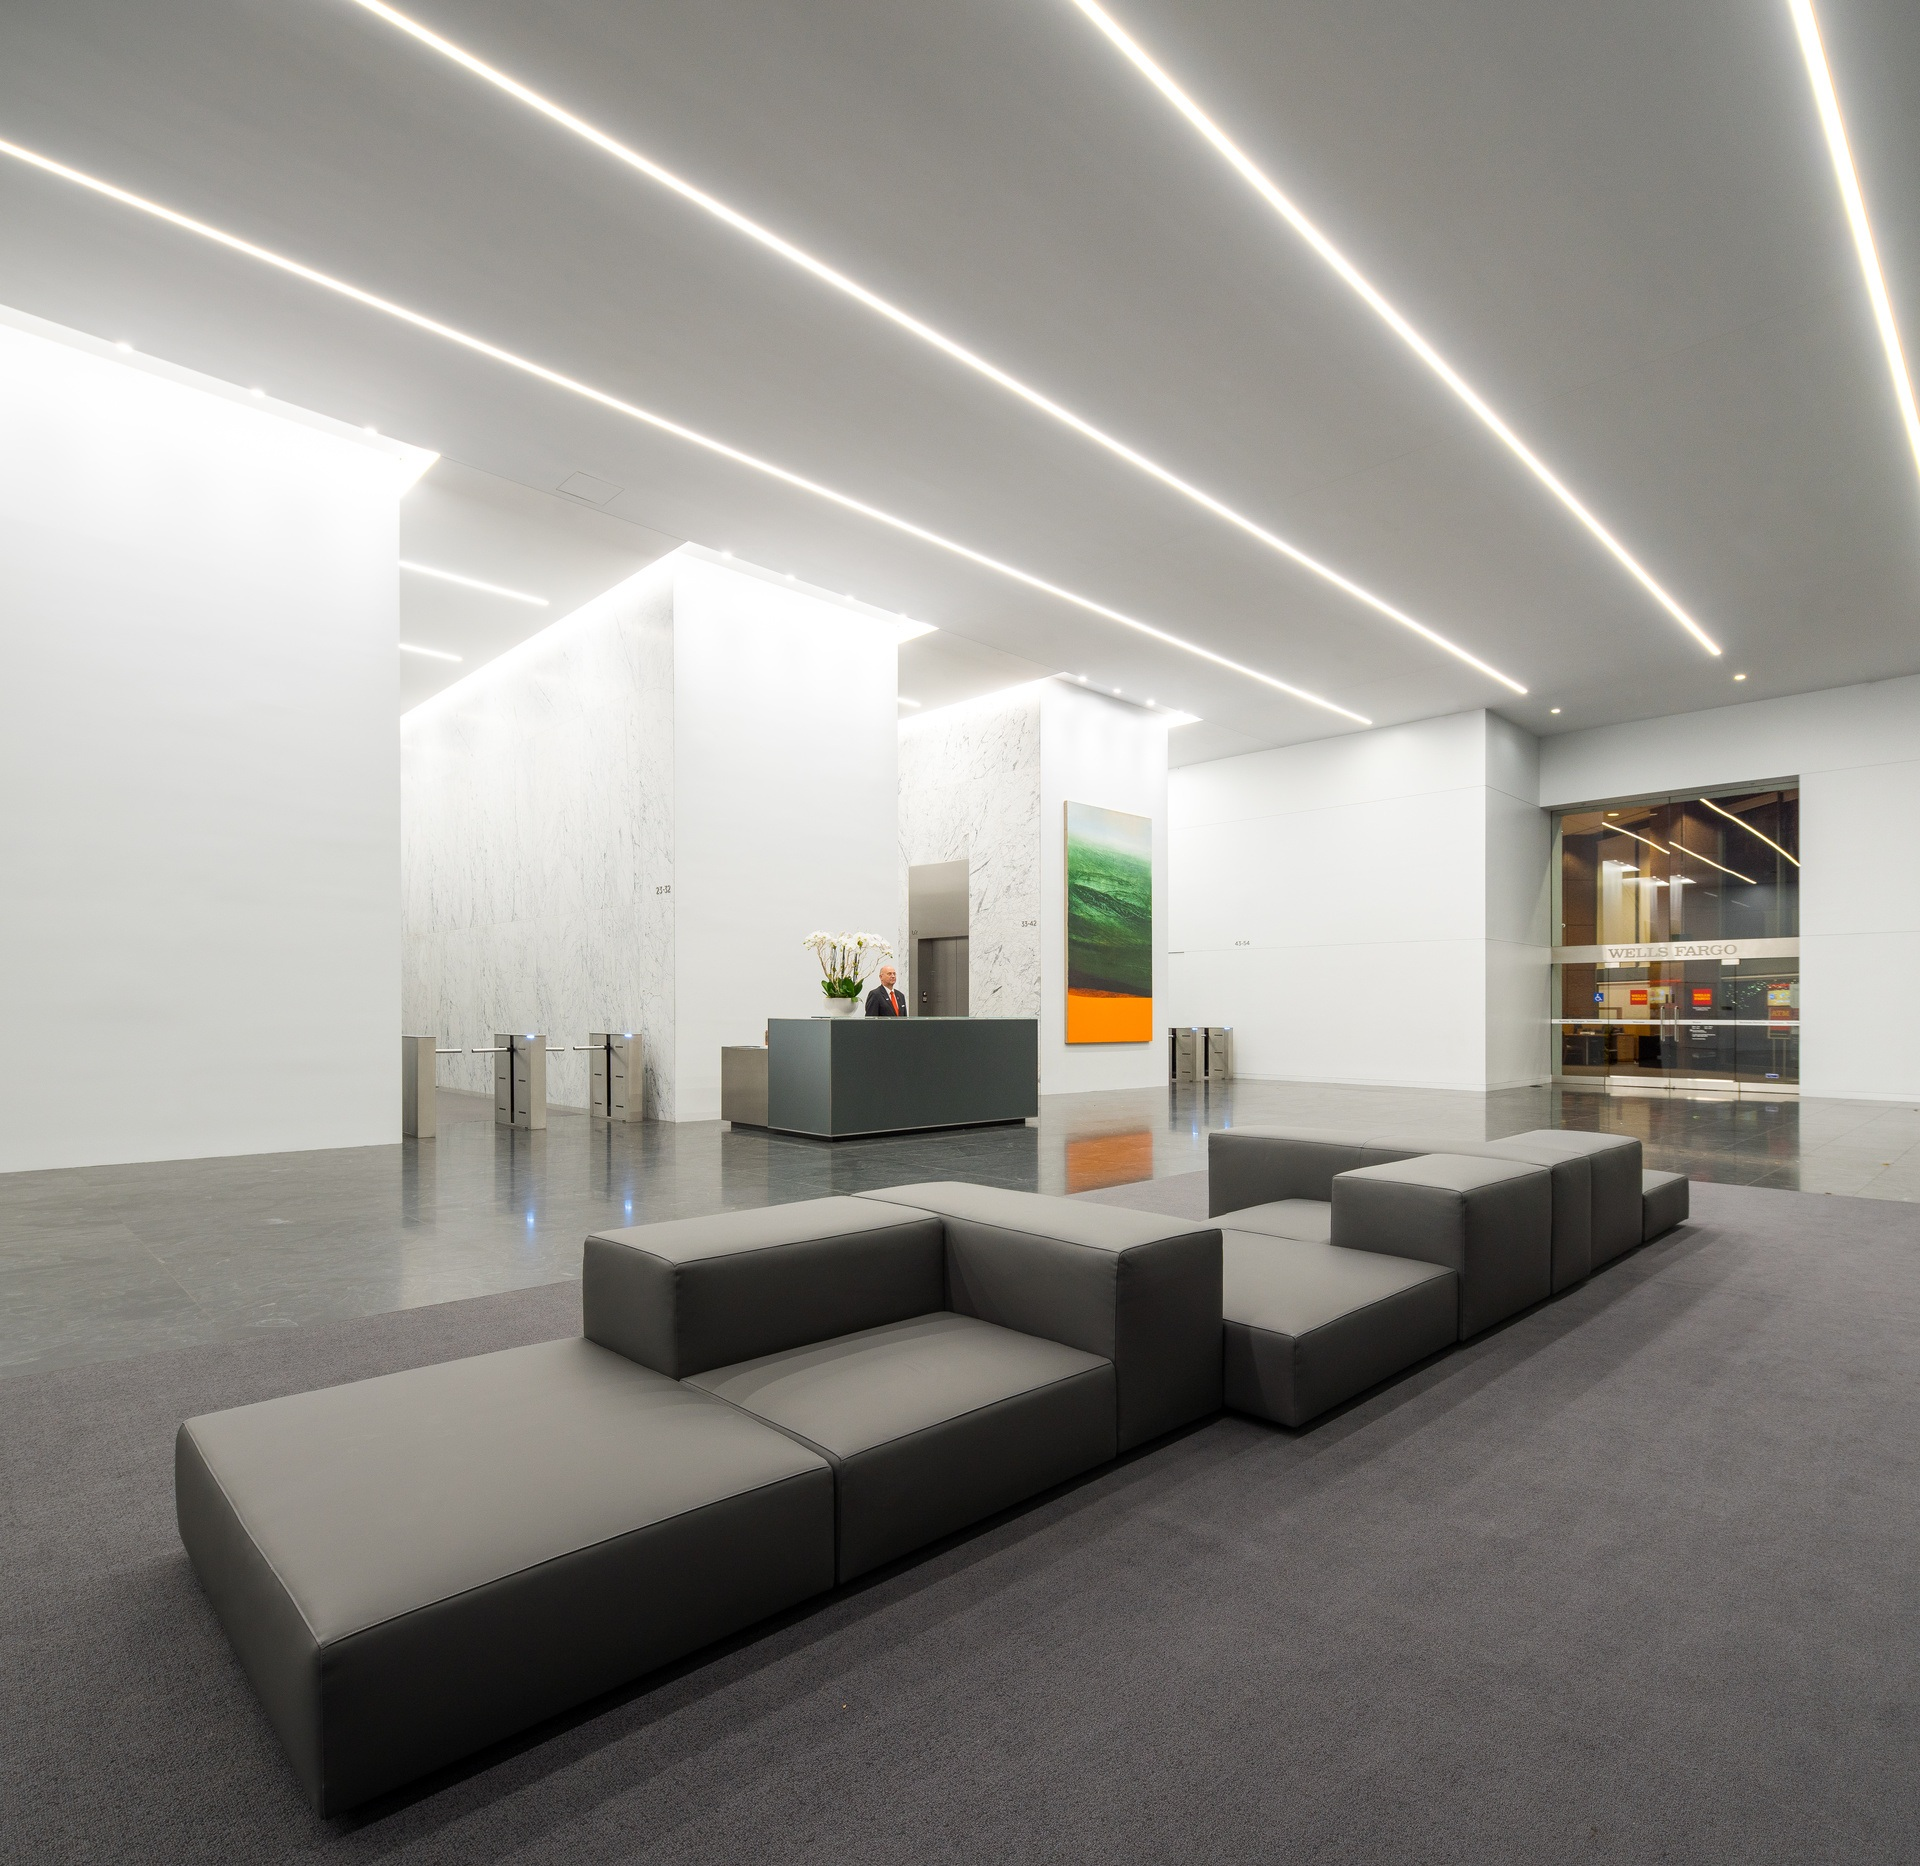 Bright lobby at night with gray couches and a turnstile.